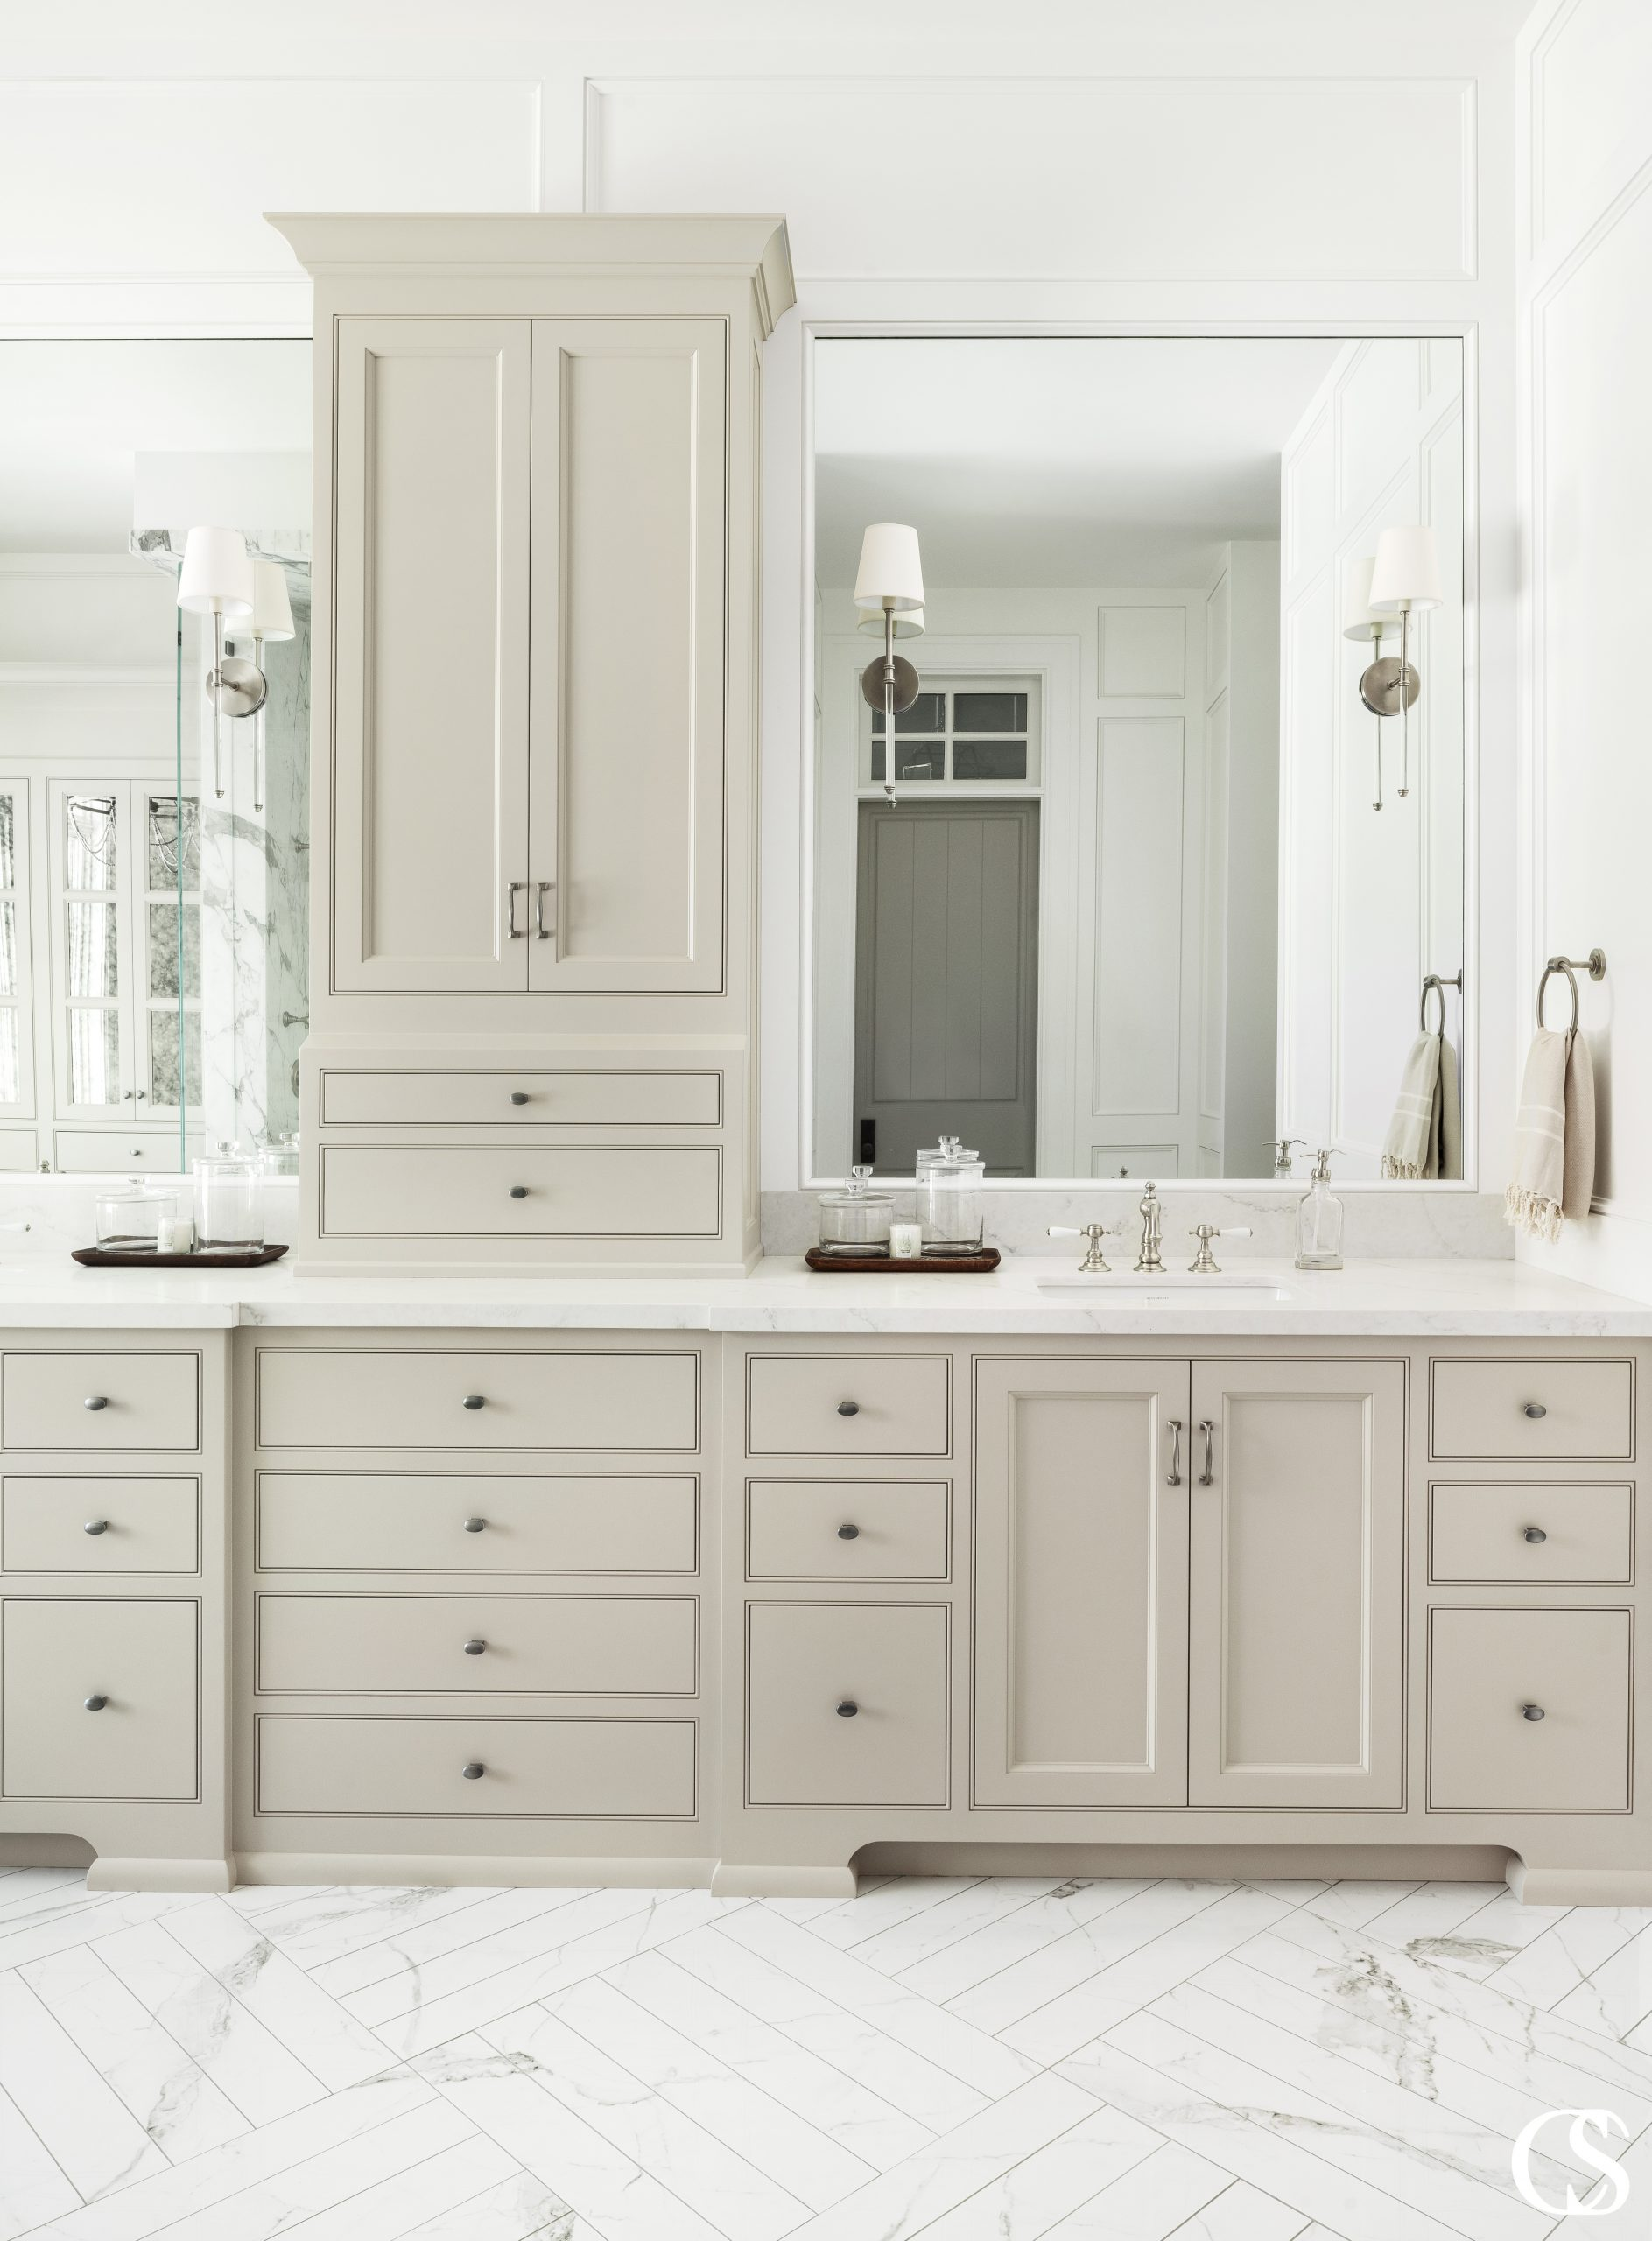 A common misconception with bathroom vanity cabinets is that a vanity is all one cabinet, when in most cases, especially when two sinks are being incorporated, it's a combination of cabinets. The main reason for this is that you may need to fill a width greater than what a single cabinet can fill. Other reasons may be that you need to have a sink cabinet centered on plumbing or want to work in a specific type of storage.